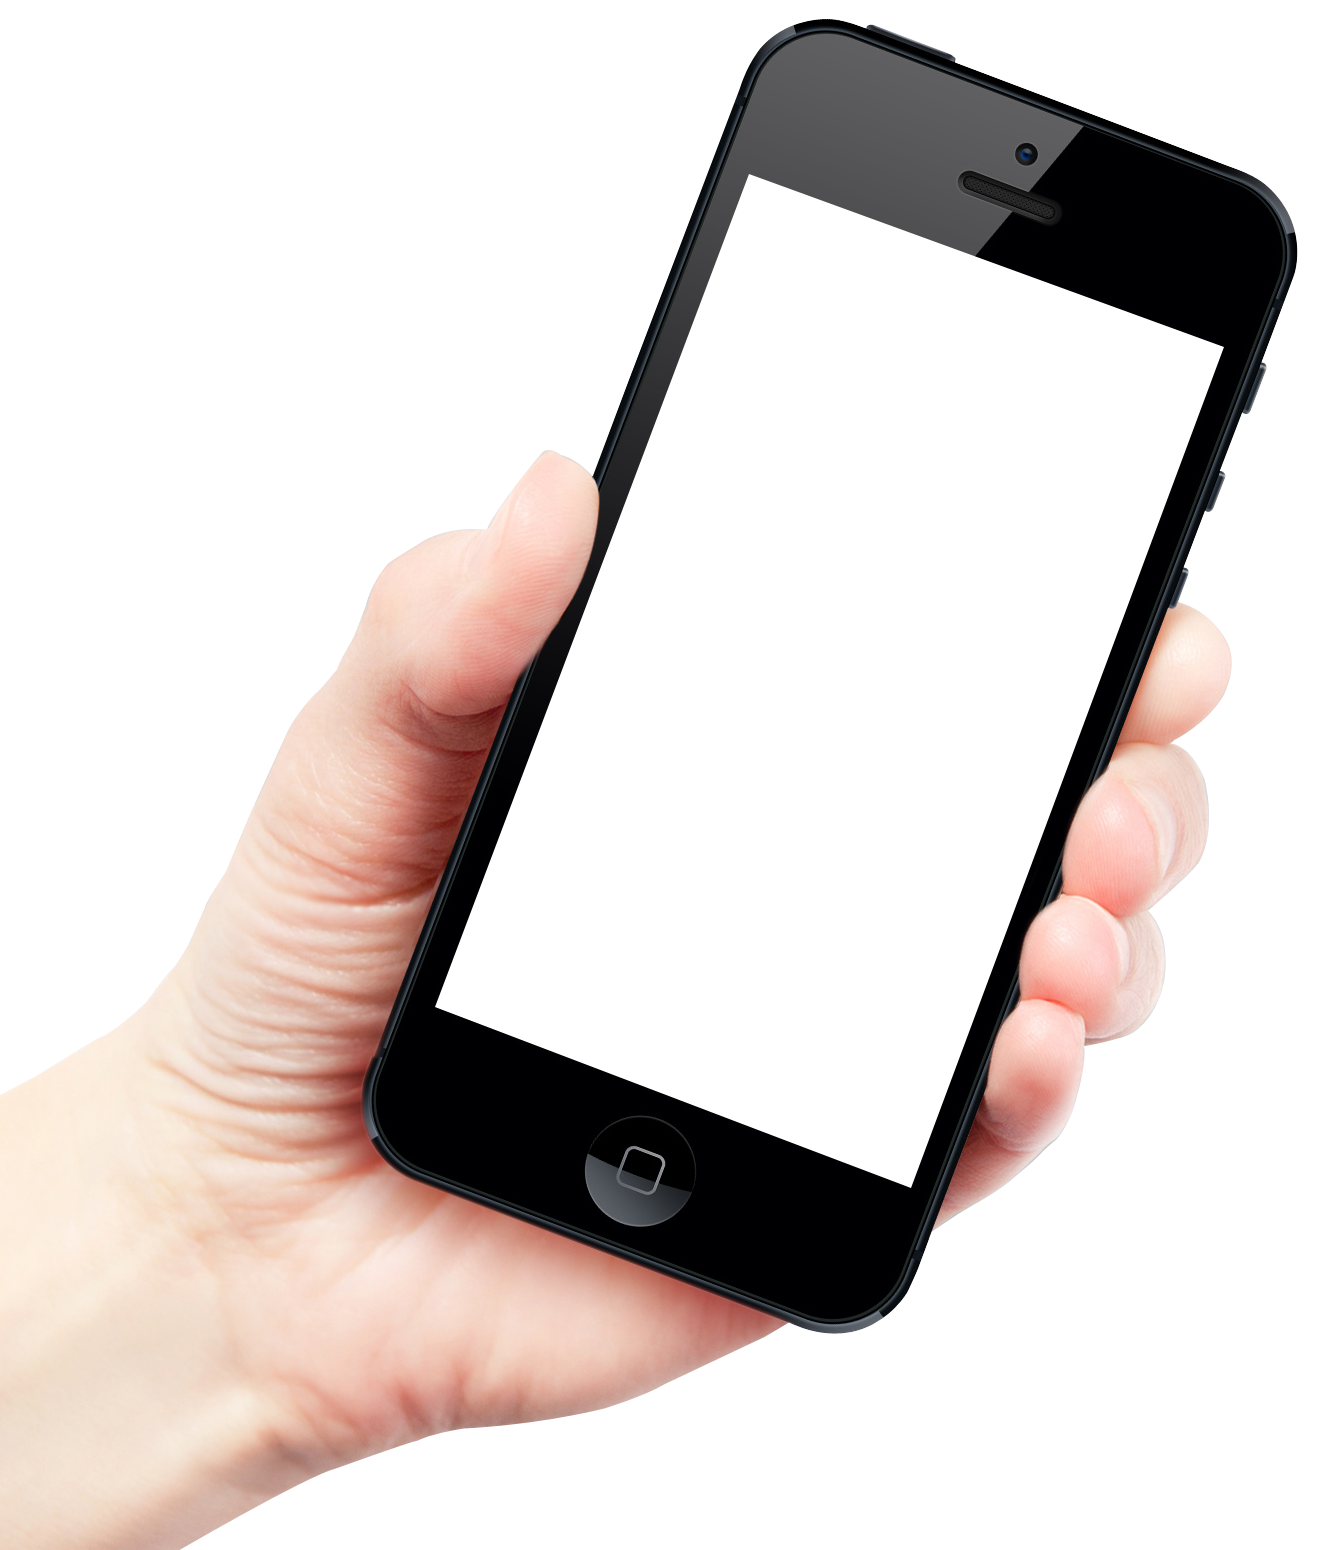 Cellphone in hand png. Mobile images pngpix holding